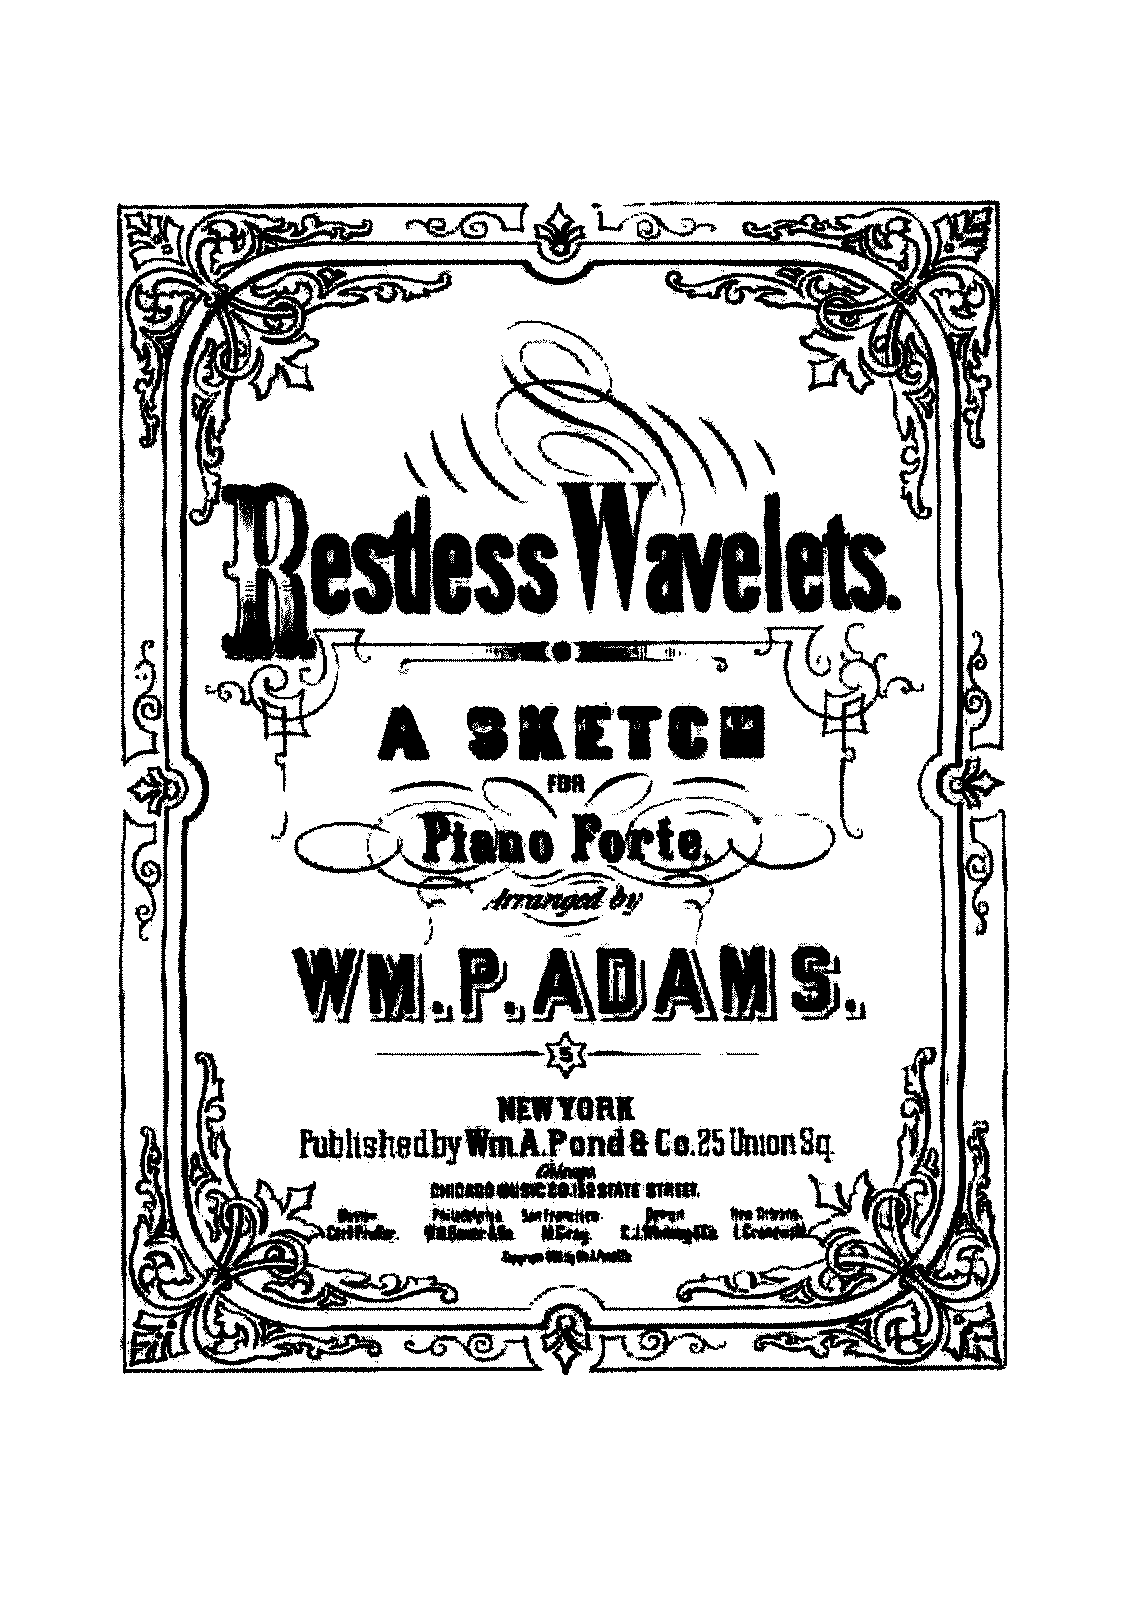 PMLP353565-Adams, William P. - Restless Wavelets - C. 1880 - LOC.pdf